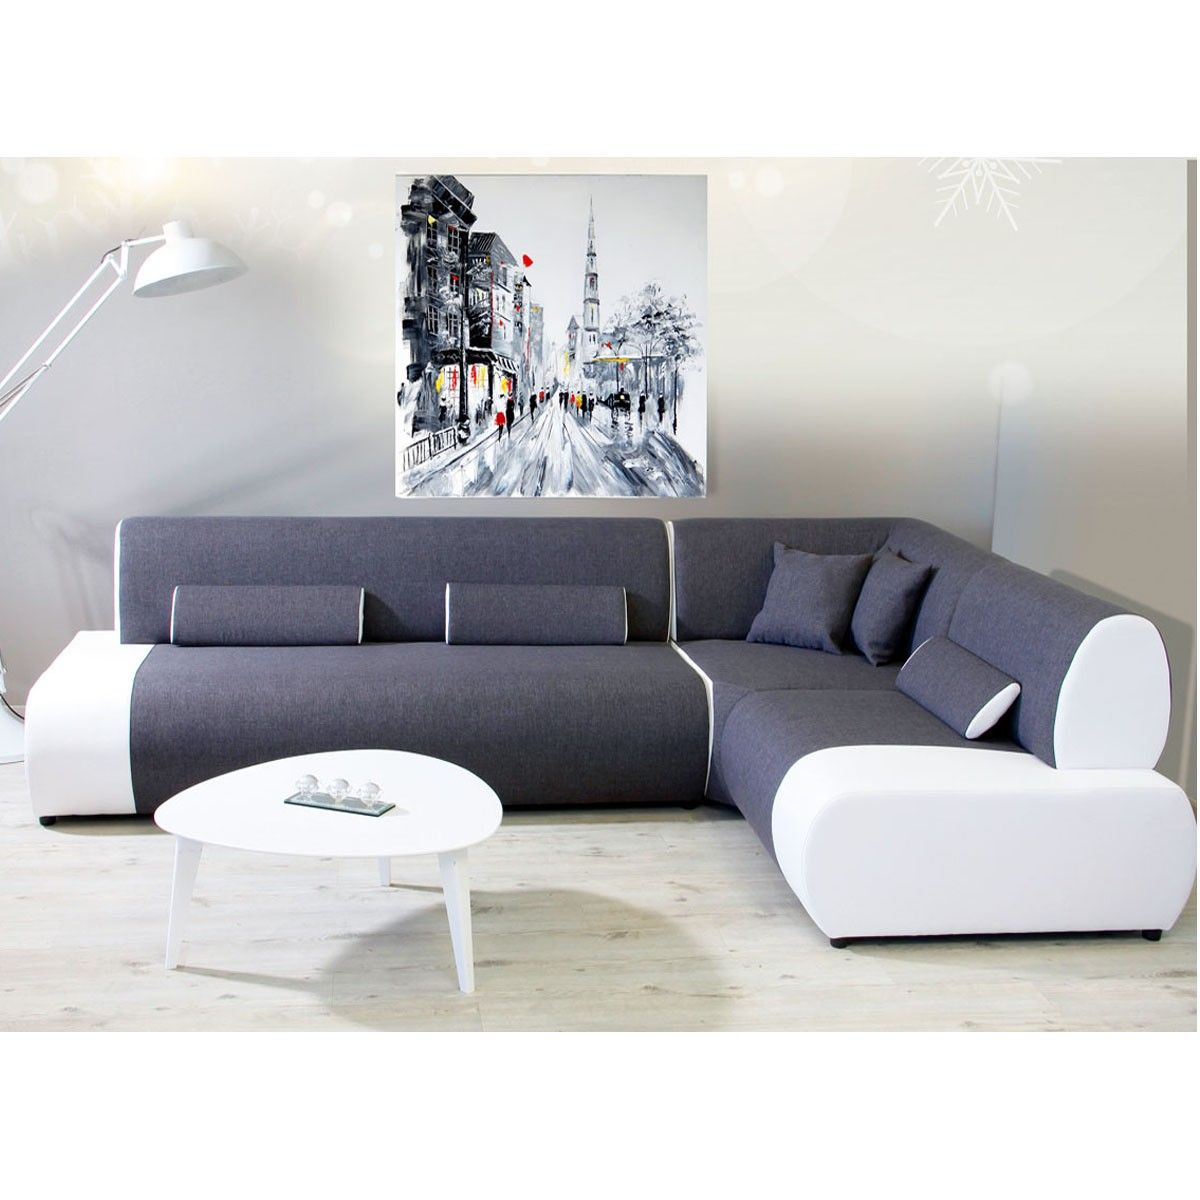 canap angle droit tissu polyester et pvc gris et blanc miami d co salon pinterest canape. Black Bedroom Furniture Sets. Home Design Ideas